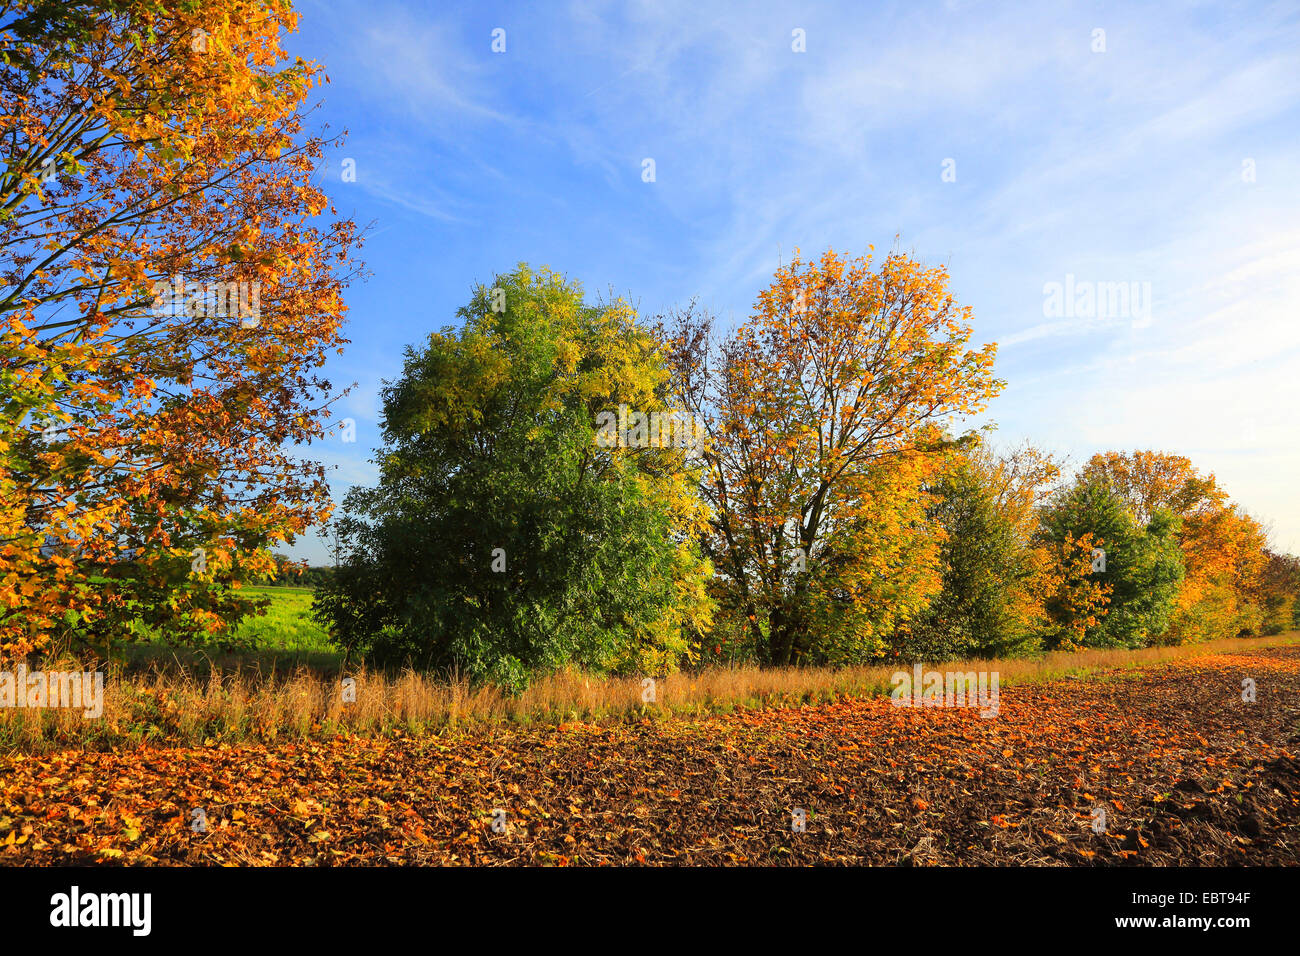 field landscape with hedge in autumn, Germany - Stock Image